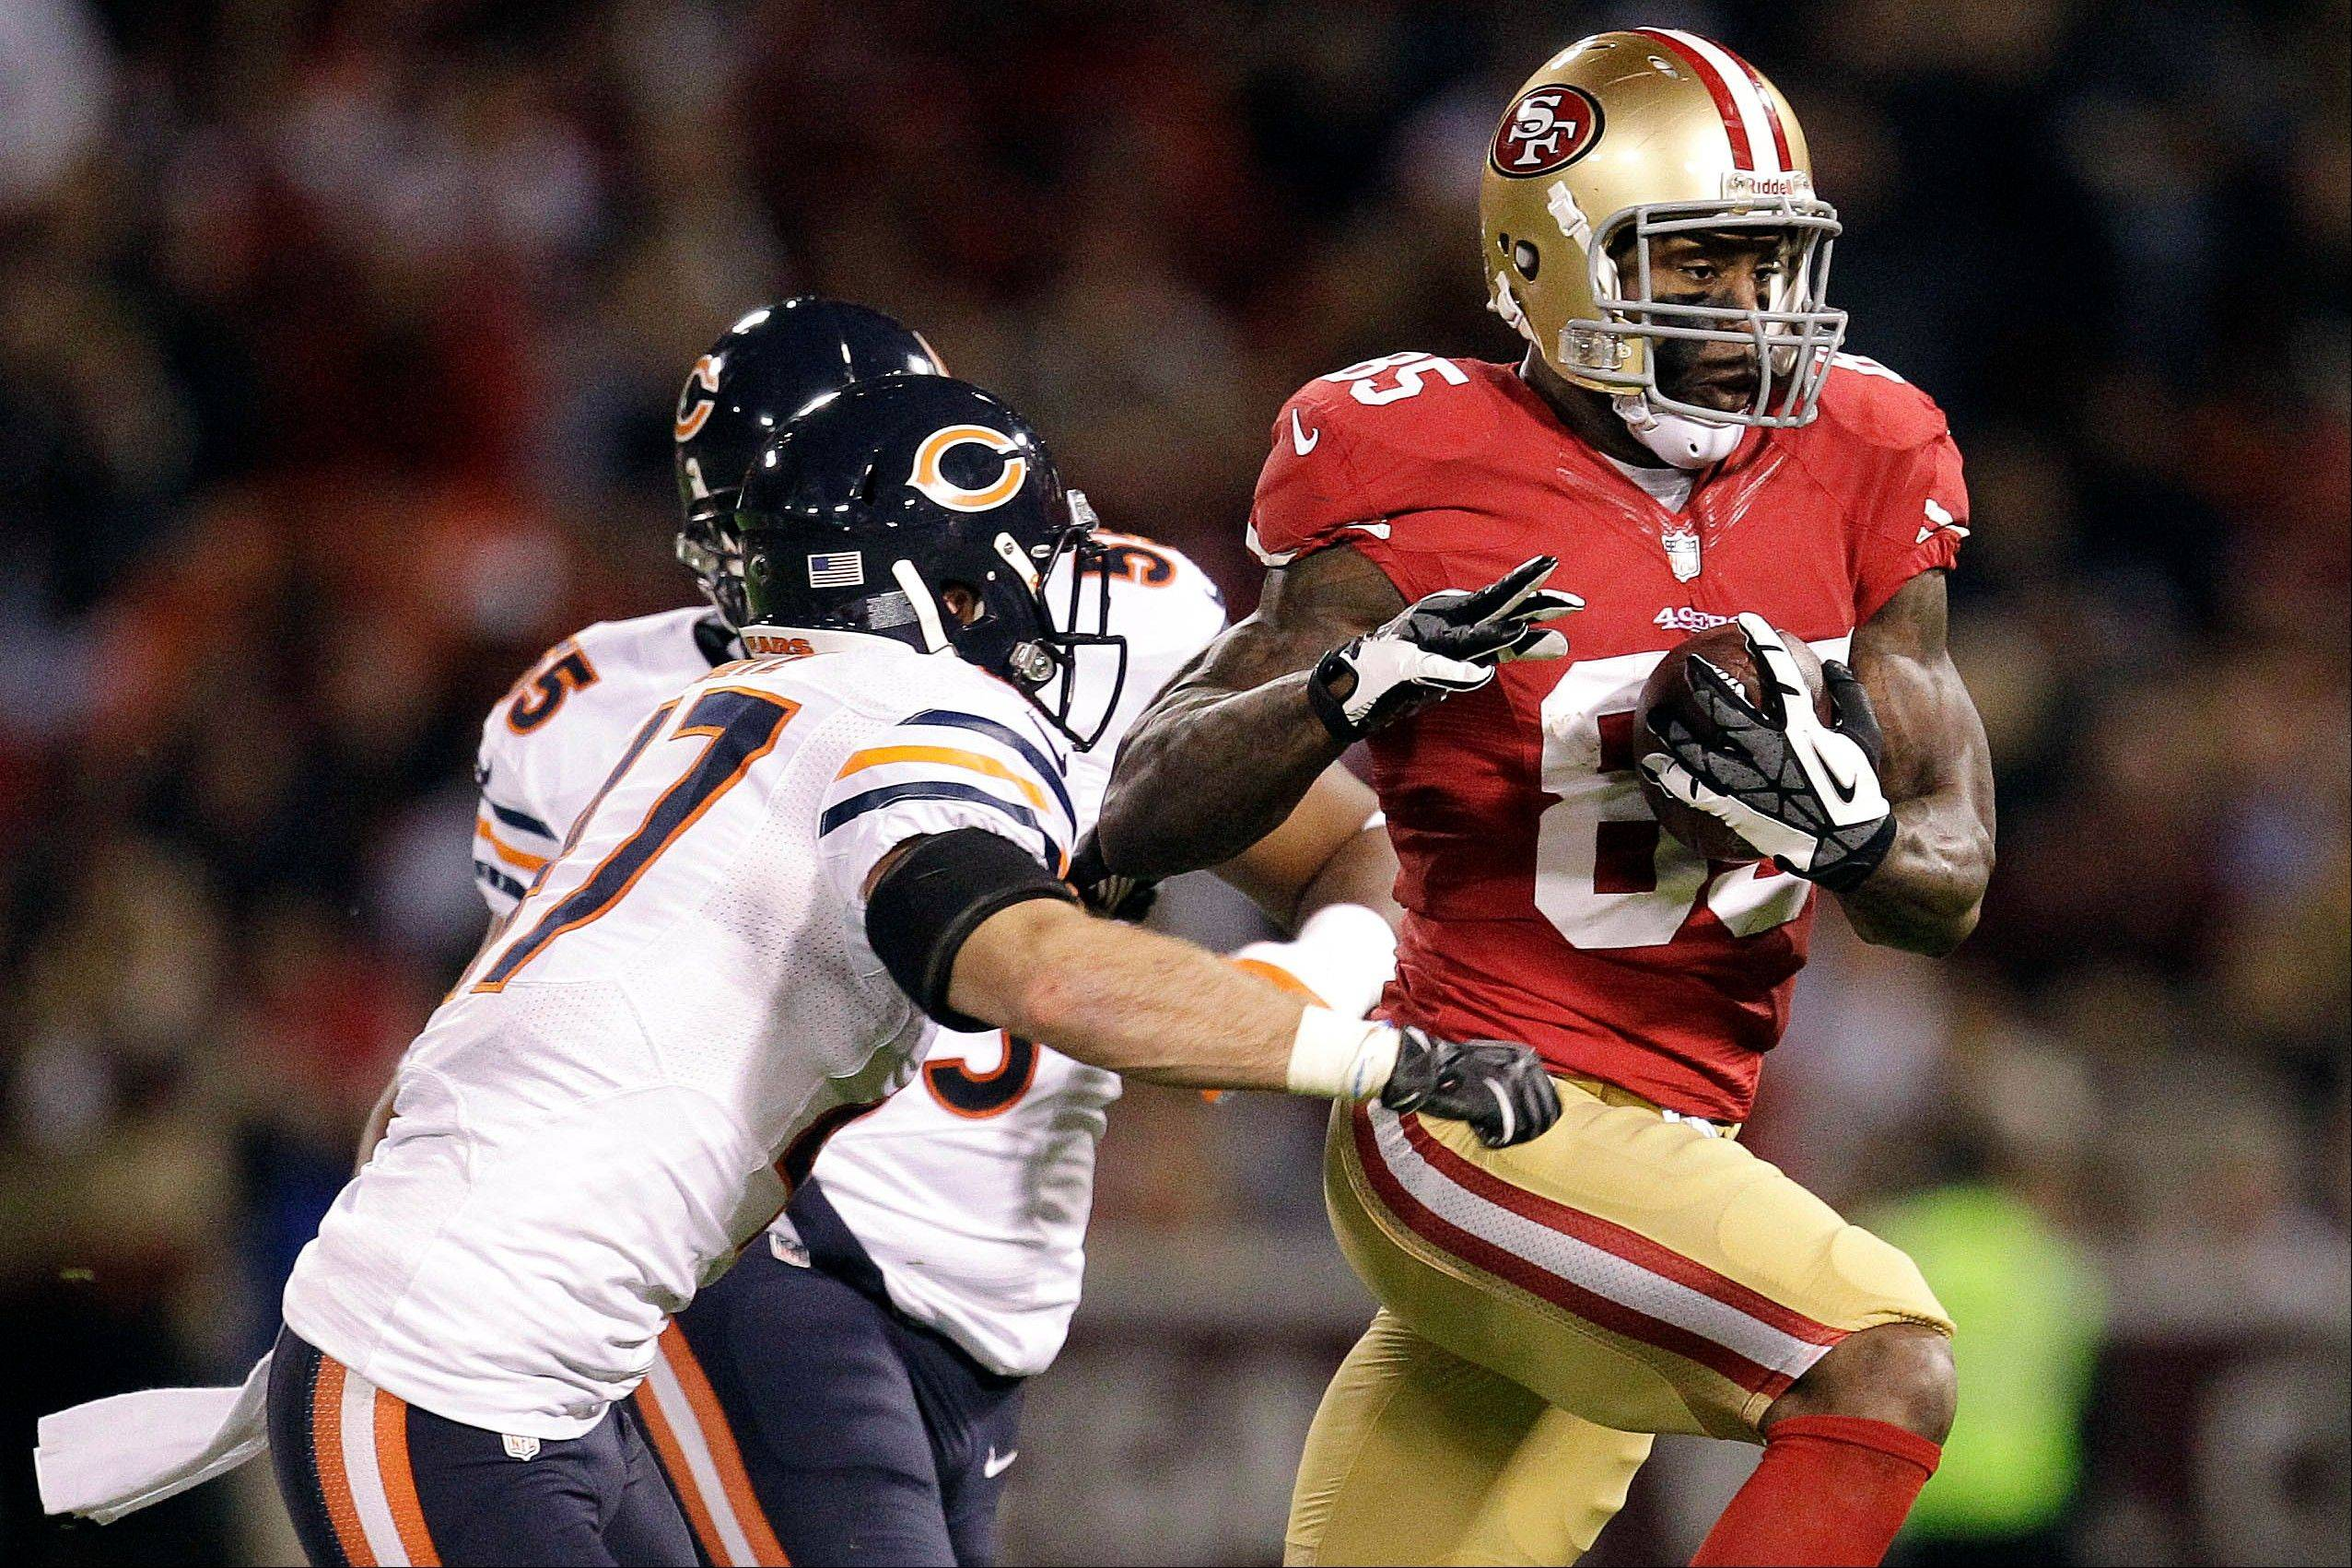 San Francisco 49ers tight end Vernon Davis runs with a pass against Chicago Bears free safety Chris Conte and outside linebacker Lance Briggs during the first half.